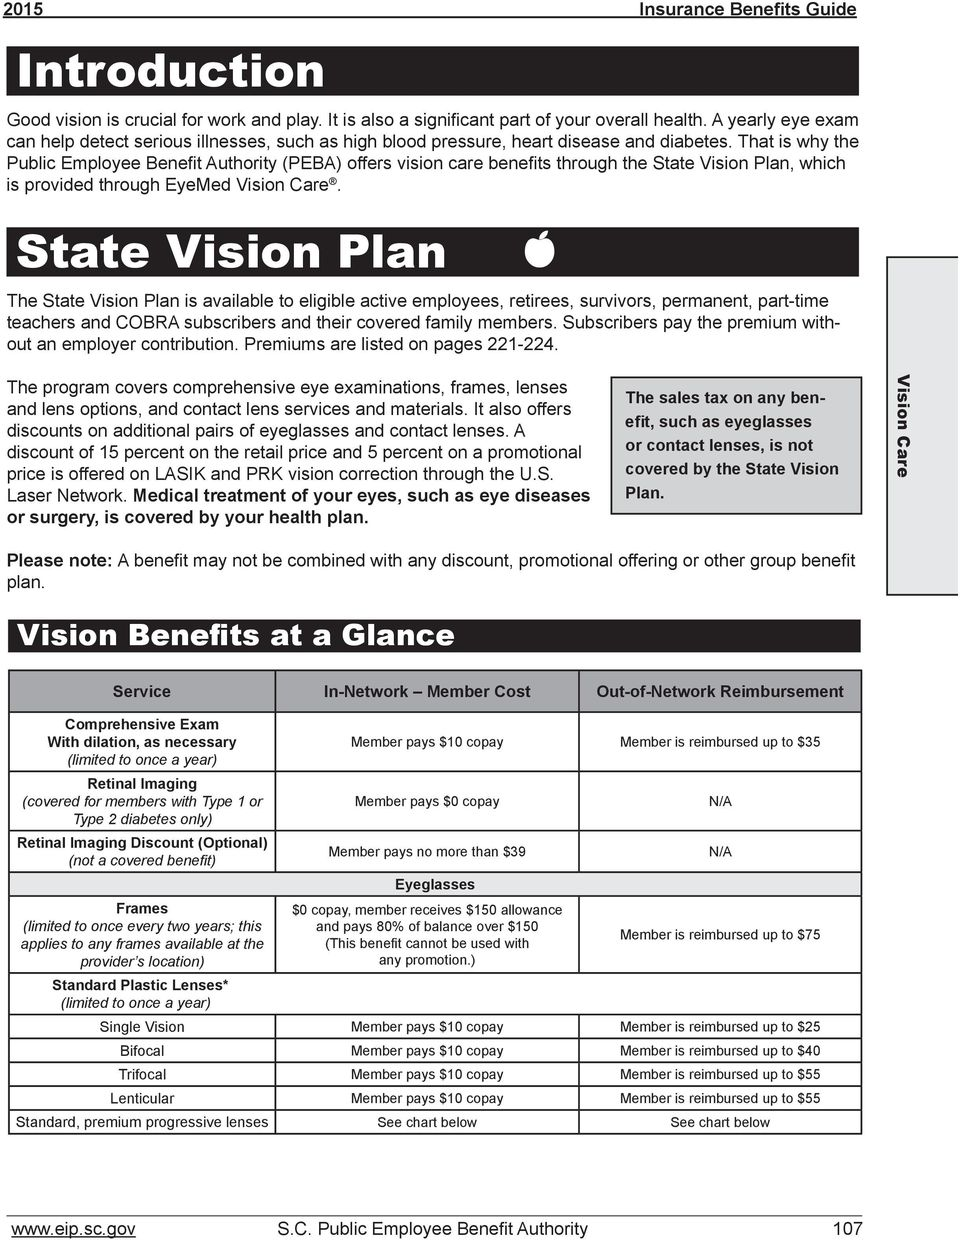 That is why the Public Employee Benefit Authority (PEBA) offers vision care benefits through the State Vision Plan, which is provided through EyeMed.